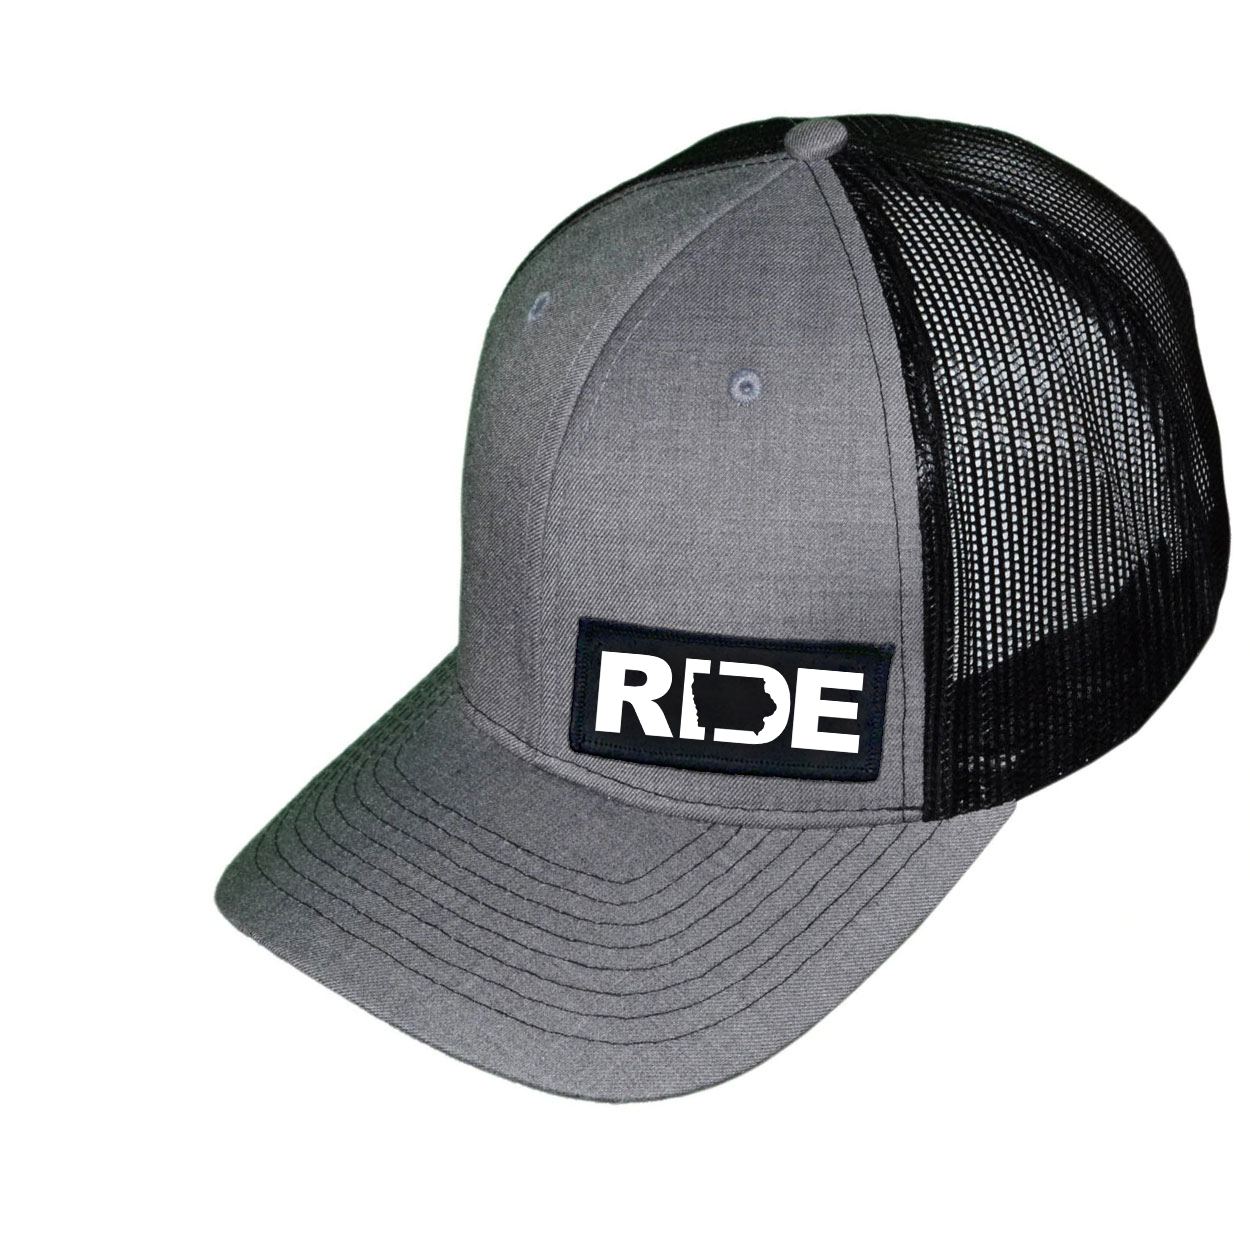 Ride Iowa Night Out Woven Patch Snapback Trucker Hat Heather Gray/Black (White Logo)